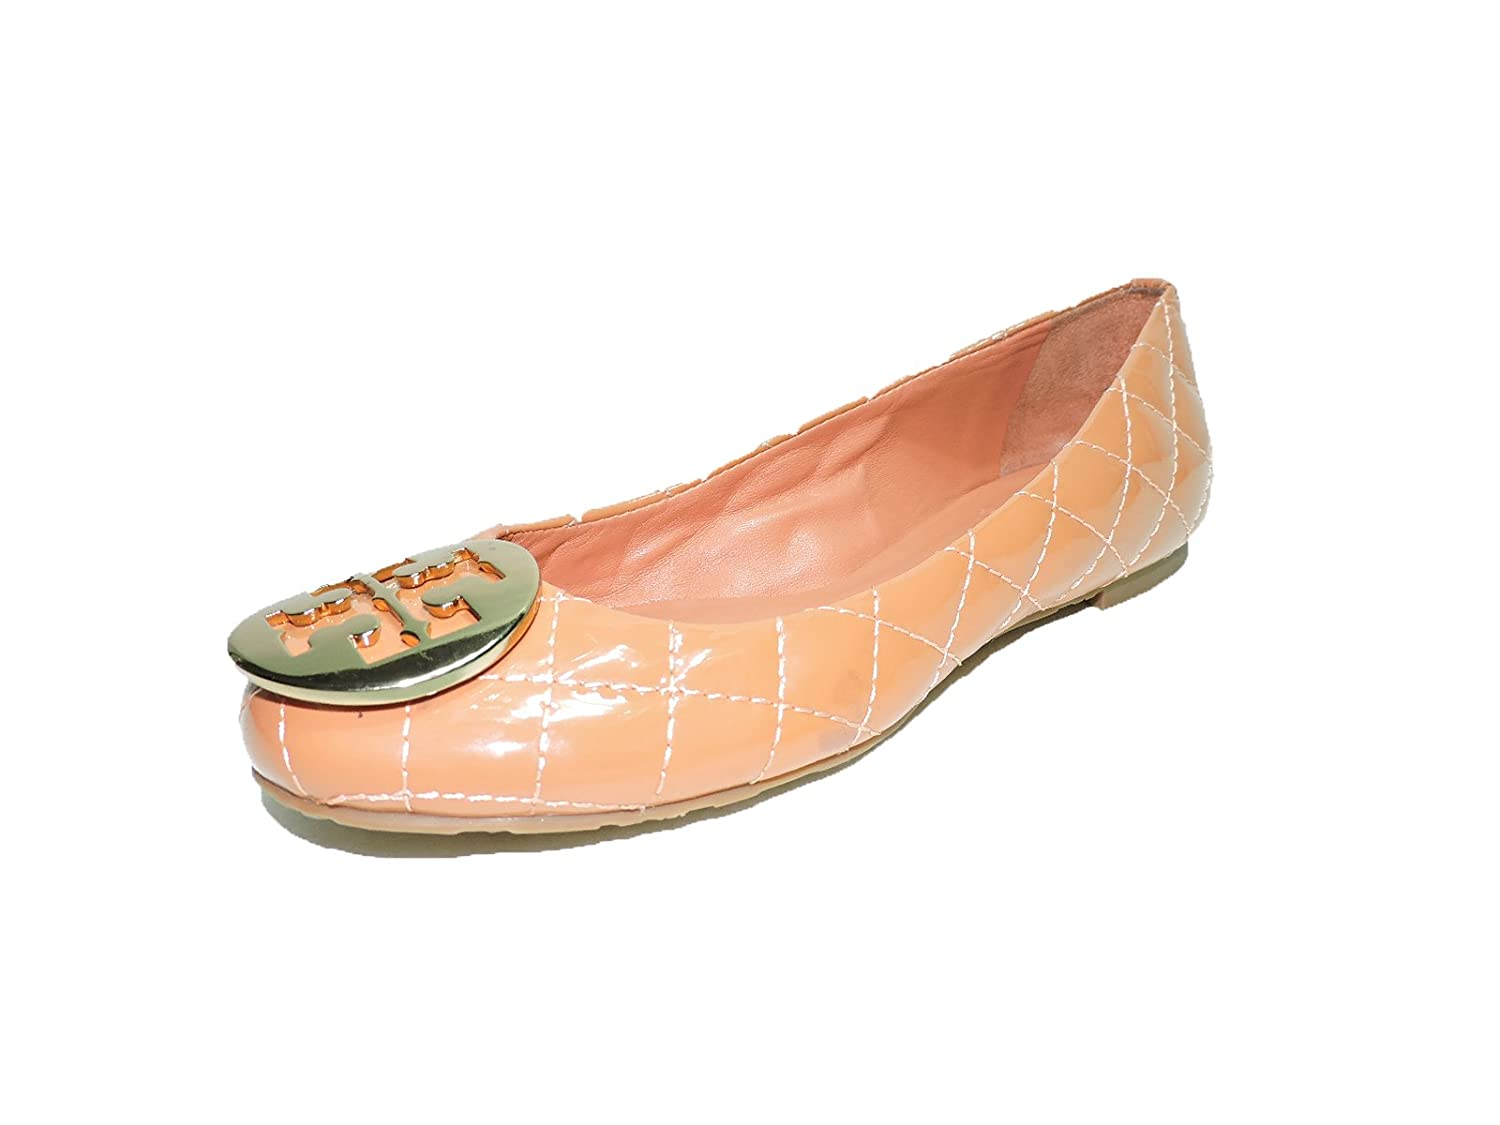 Tory Burch Laura QUILTED Shoes Ballet Flats patent Leather TB Logo Terra Cotta size 5.5 M